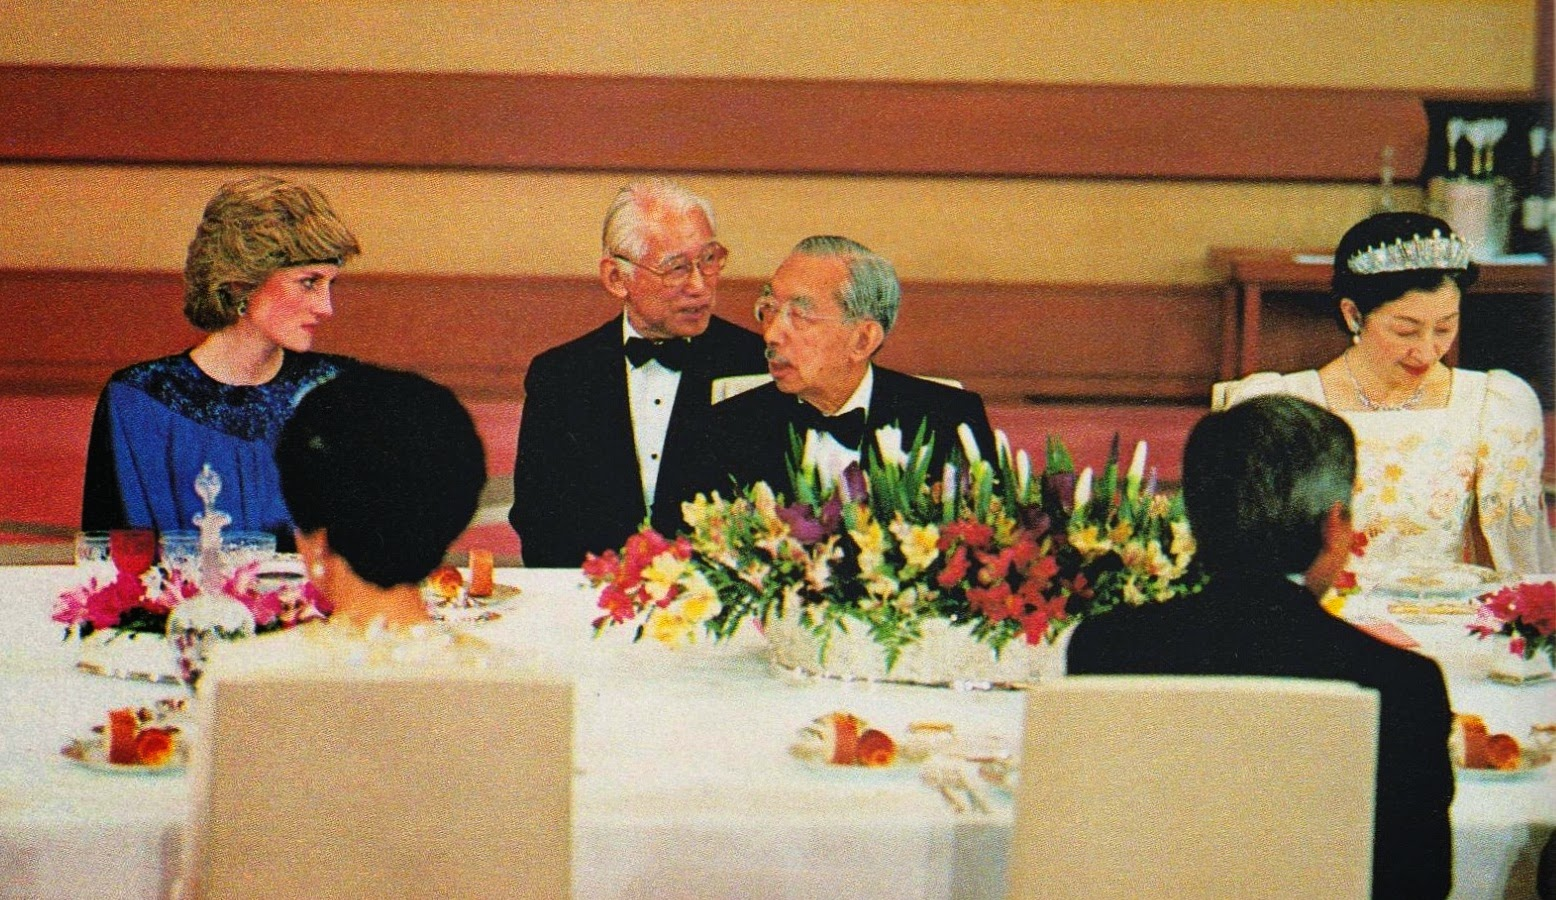 22the dinner-H.R.H. Princess Diana of Wales, H.I.M. Emperor Hirohito of Japan and H.I.H. Crown Princess Michiko of Japan, later Empress of Japan